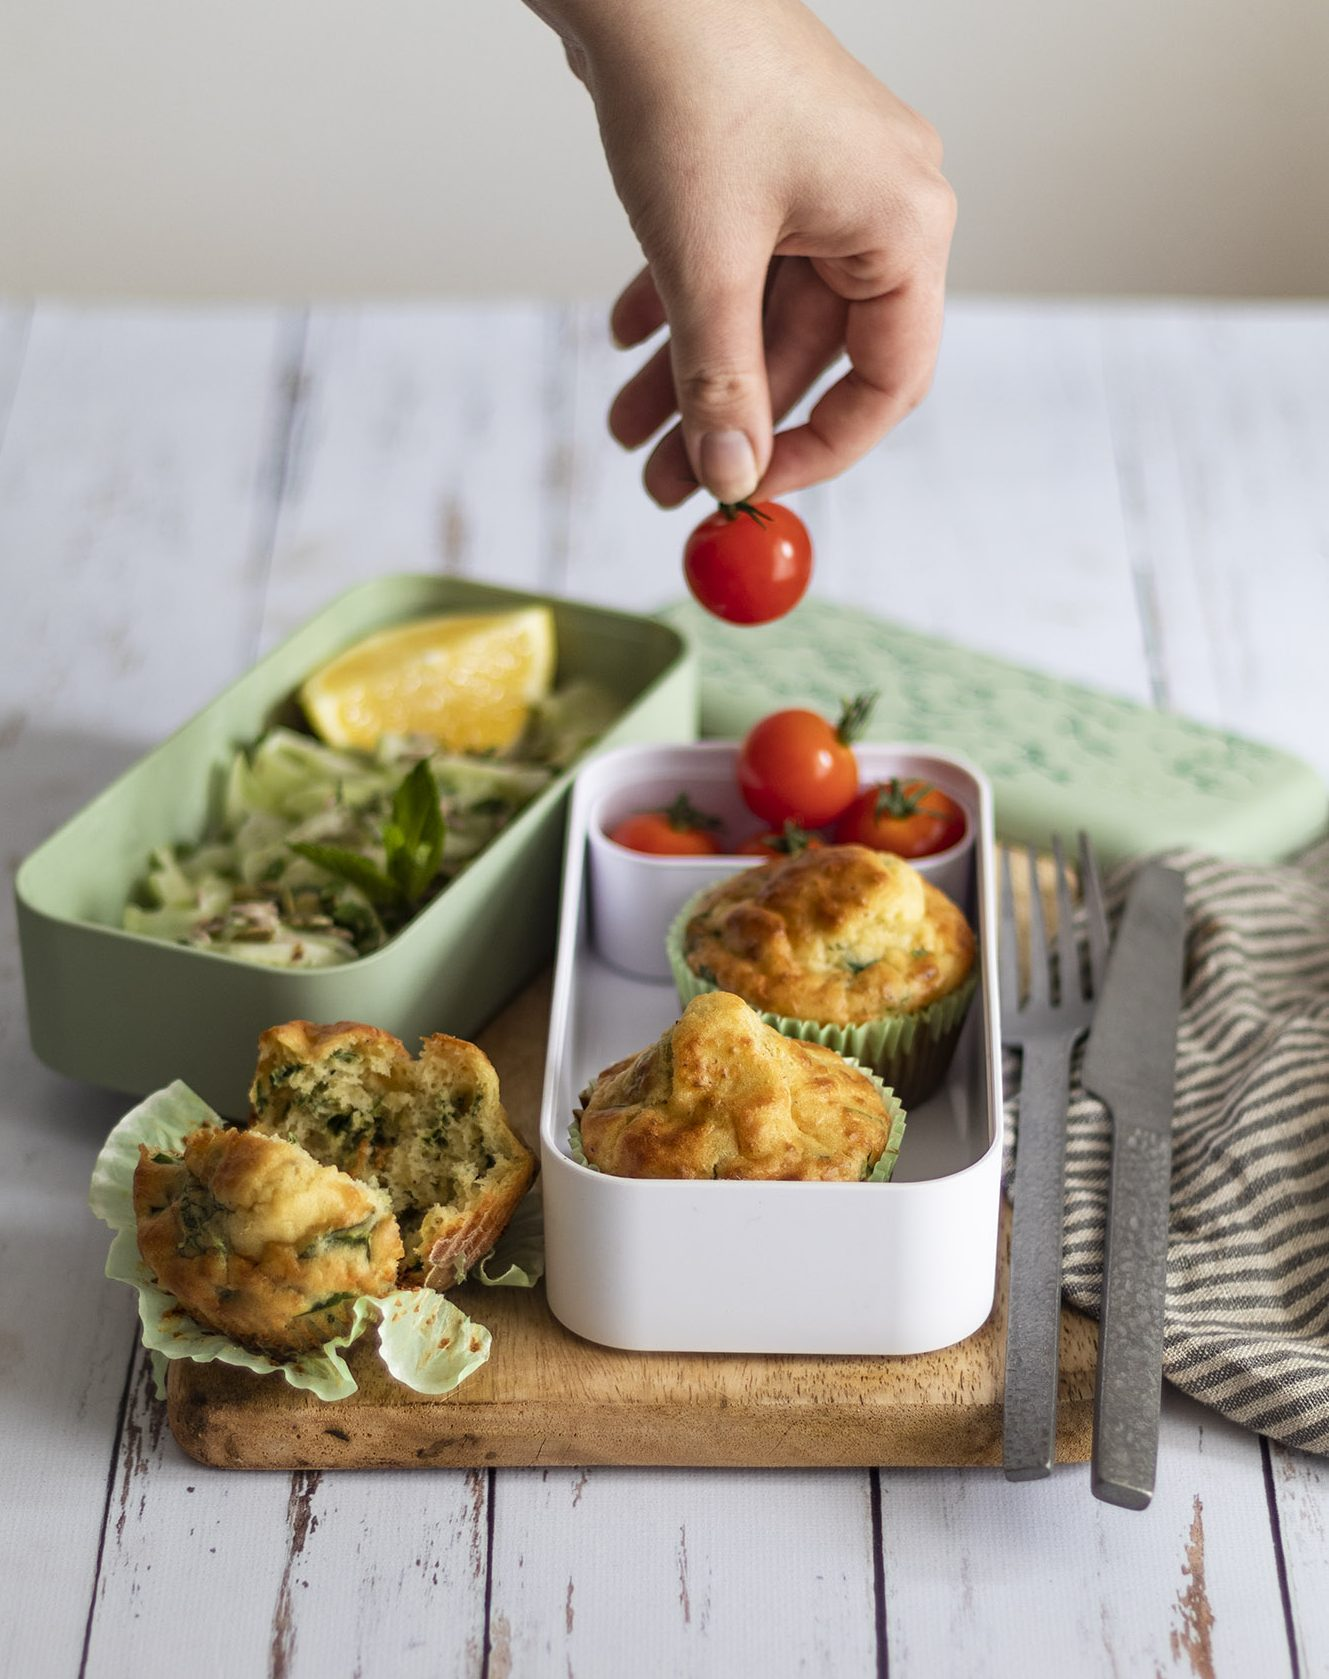 Recette Lunch box facile